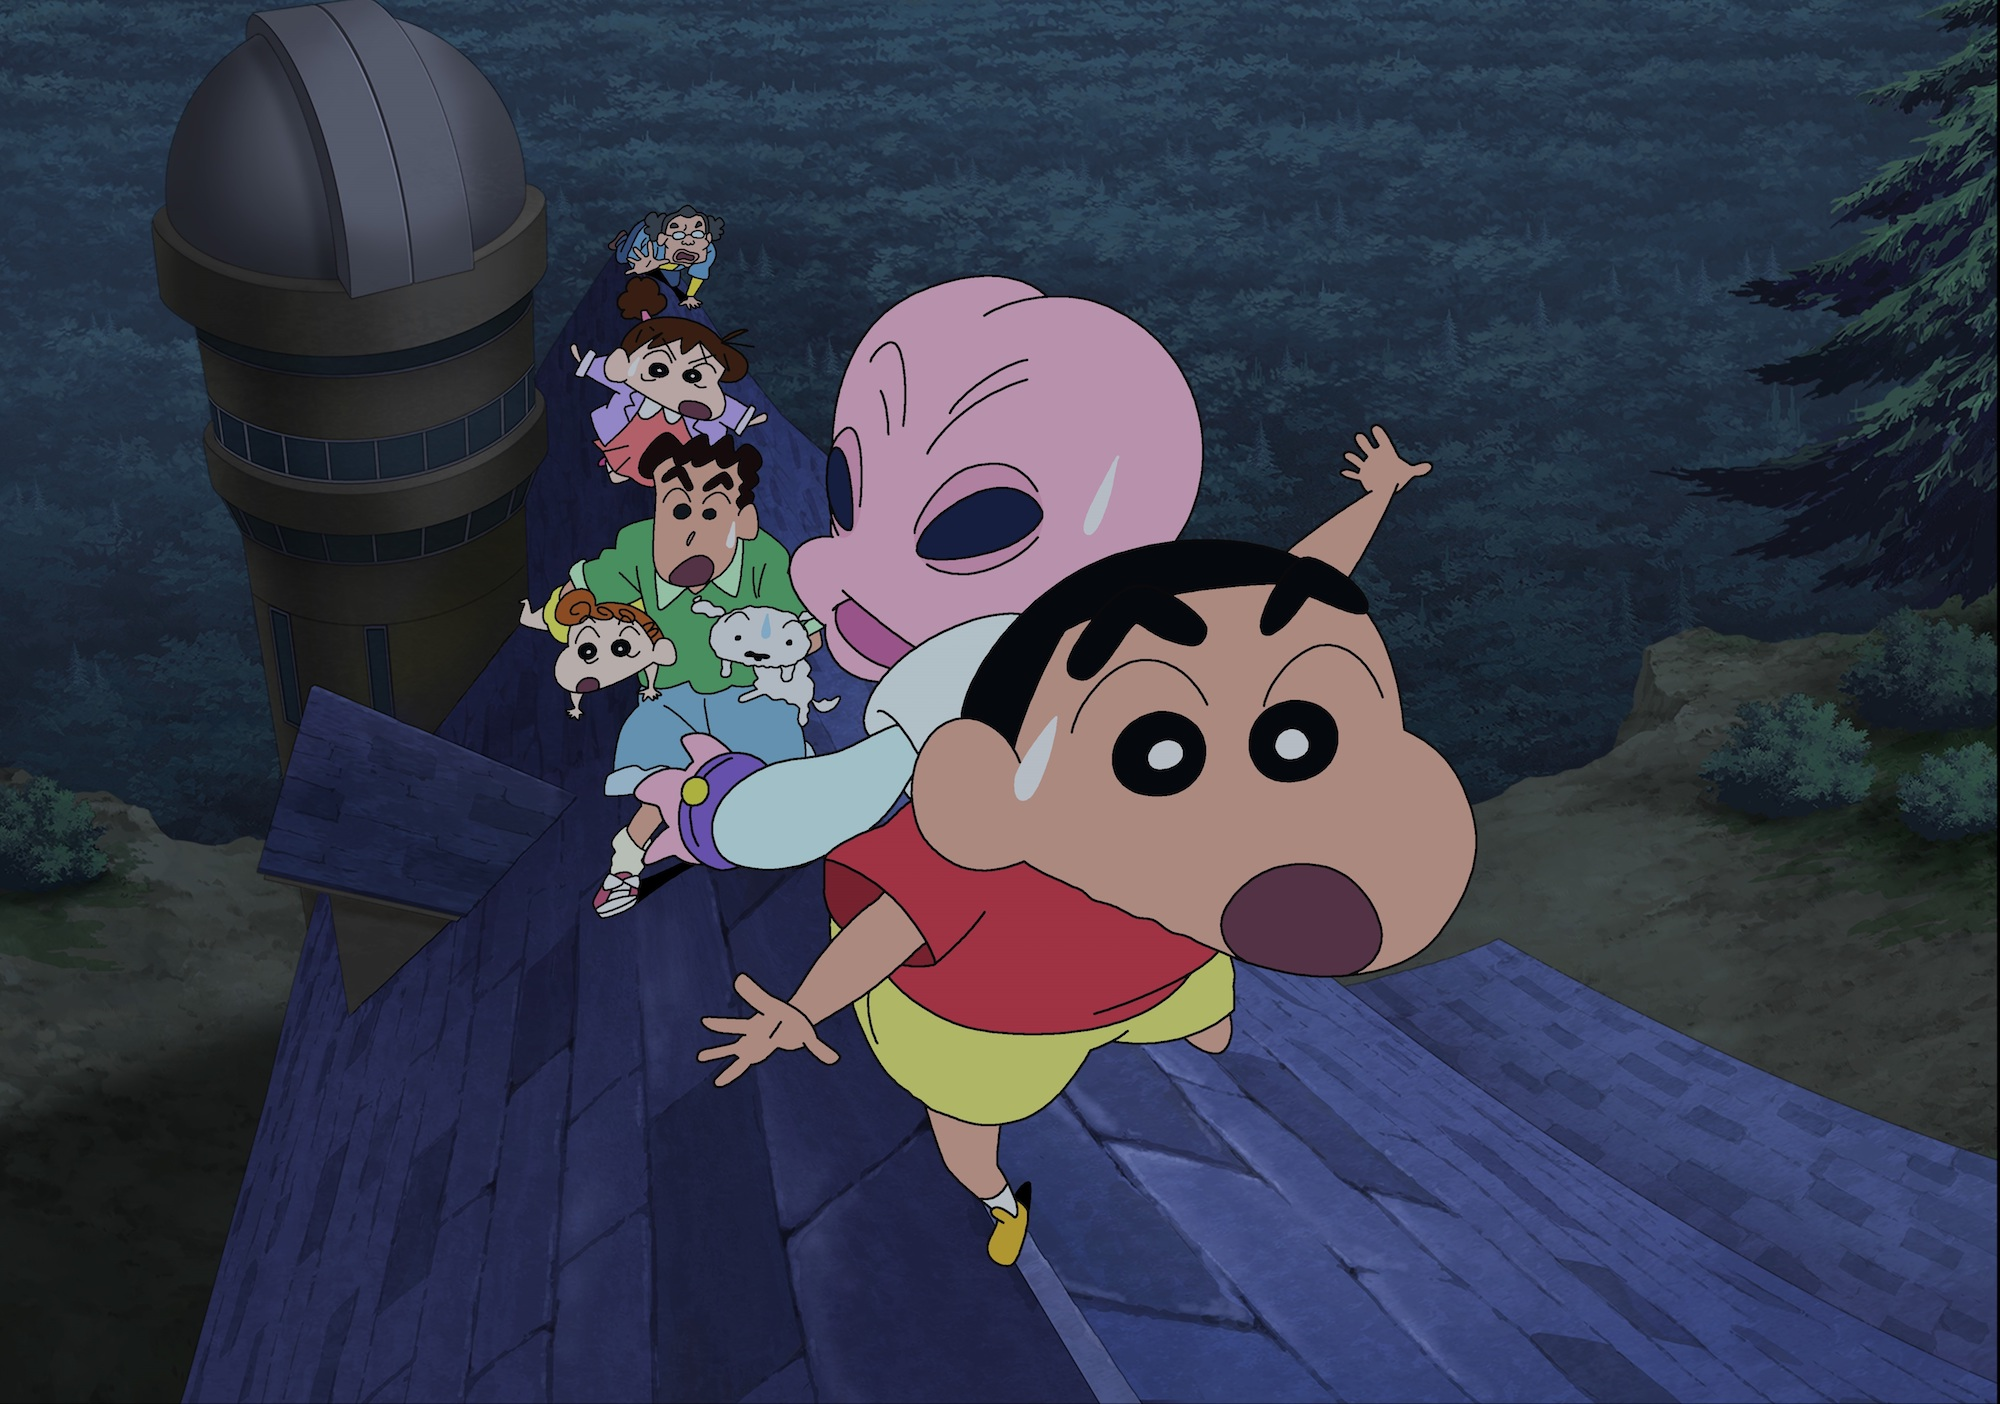 """Crayon Shin-chan: Invasion!! Alien Shiriri (クレヨンしんちゃん 襲来!!宇宙人シリリ)"". (Golden Village Cinemas)"